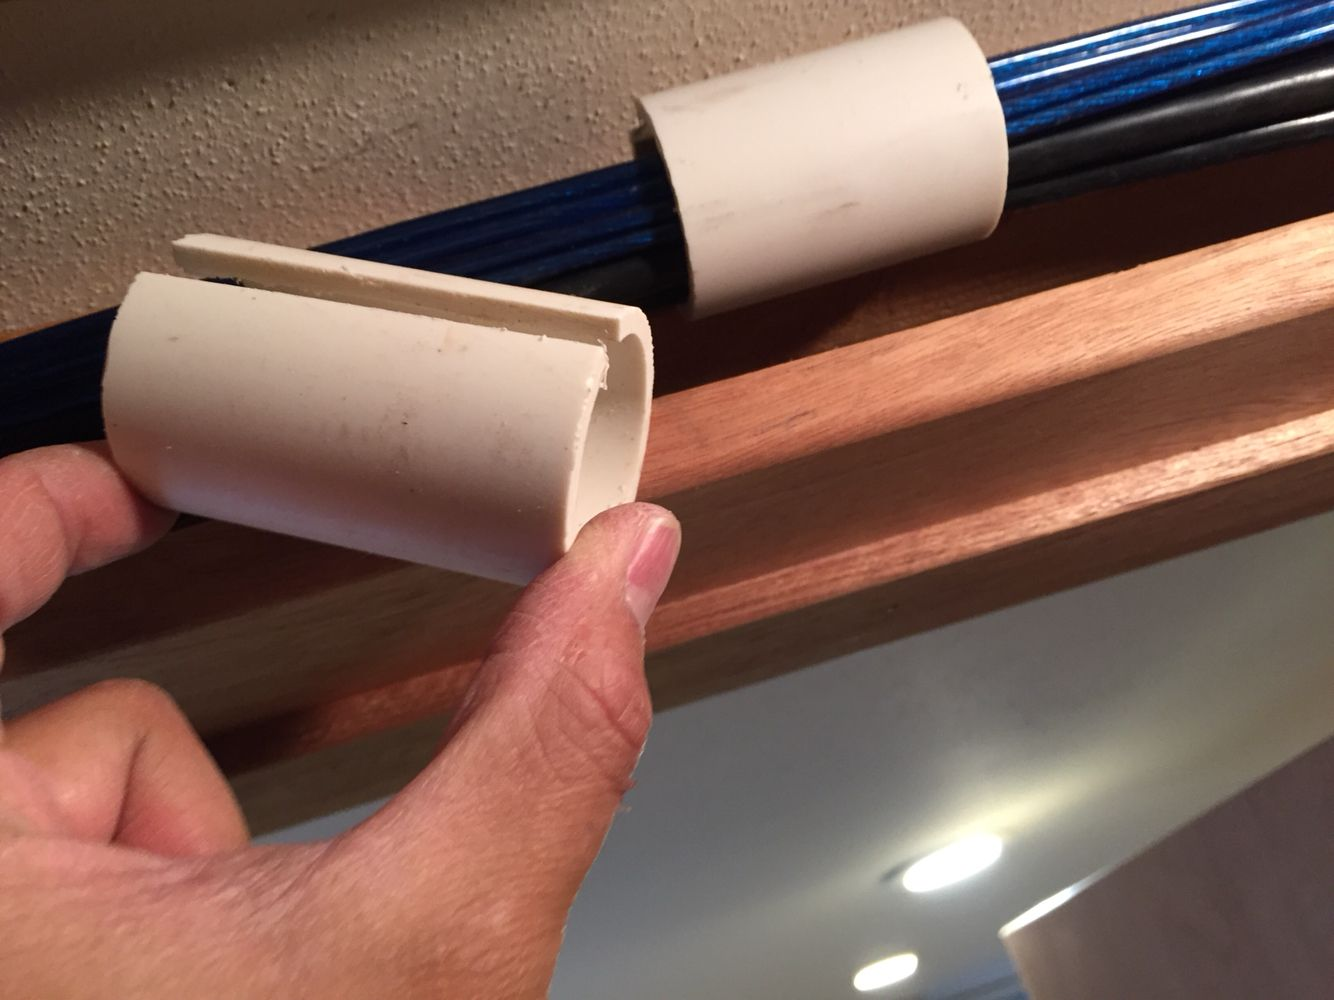 hight resolution of diy cable management system using a pvc pipe with a slit in it allowing for easy